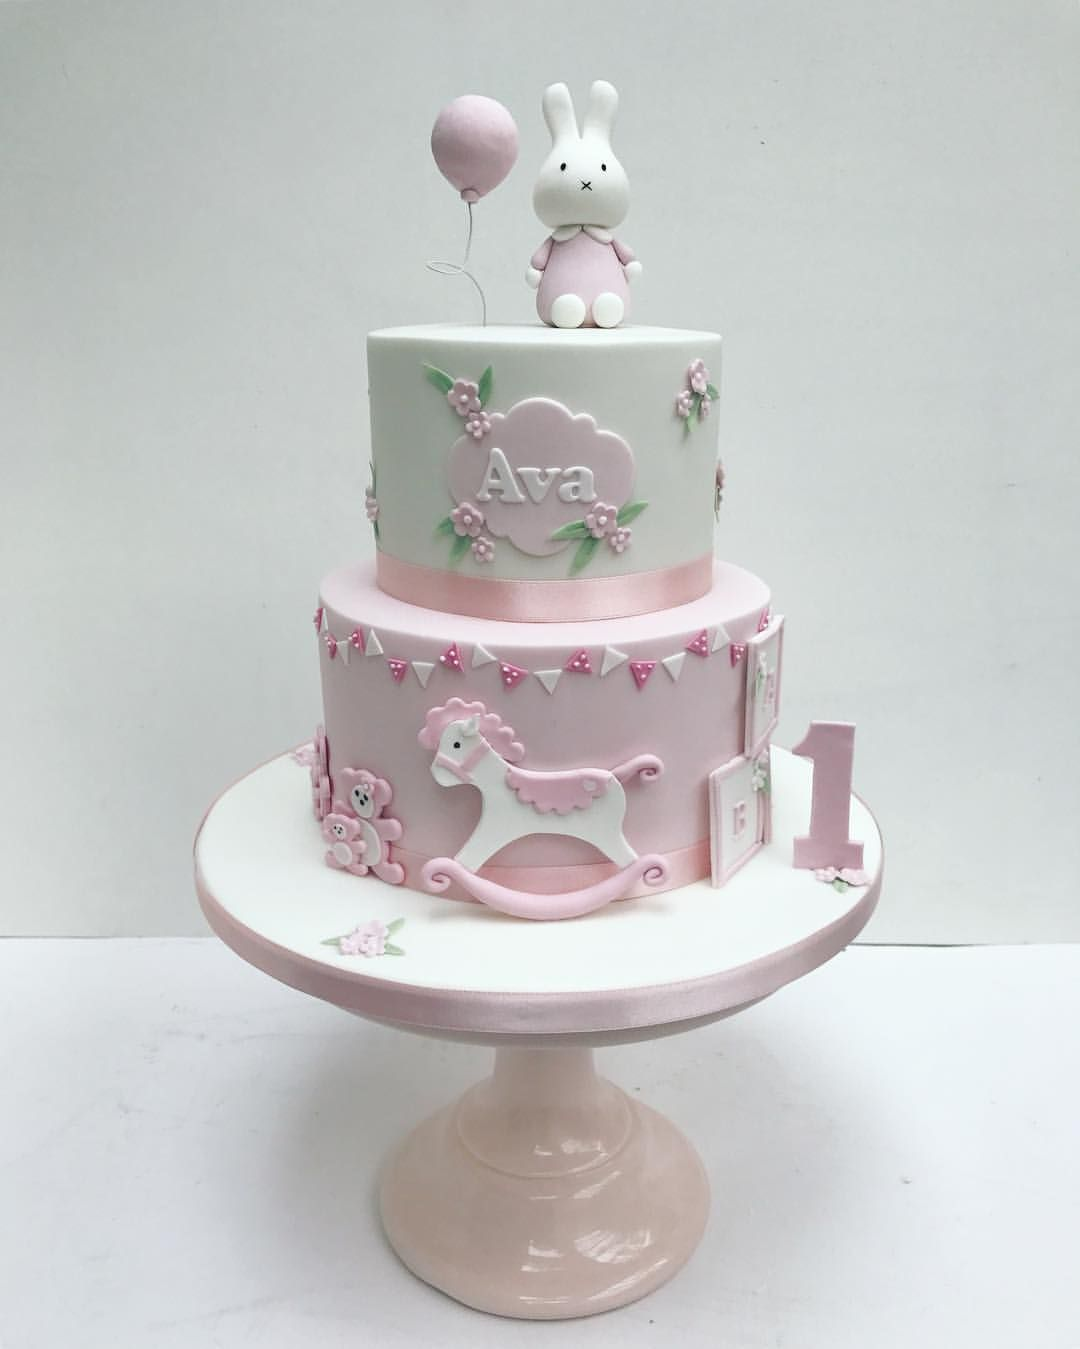 Miffy Pink Bunny Cake For Little Girls First Birthday By Sweet Bea